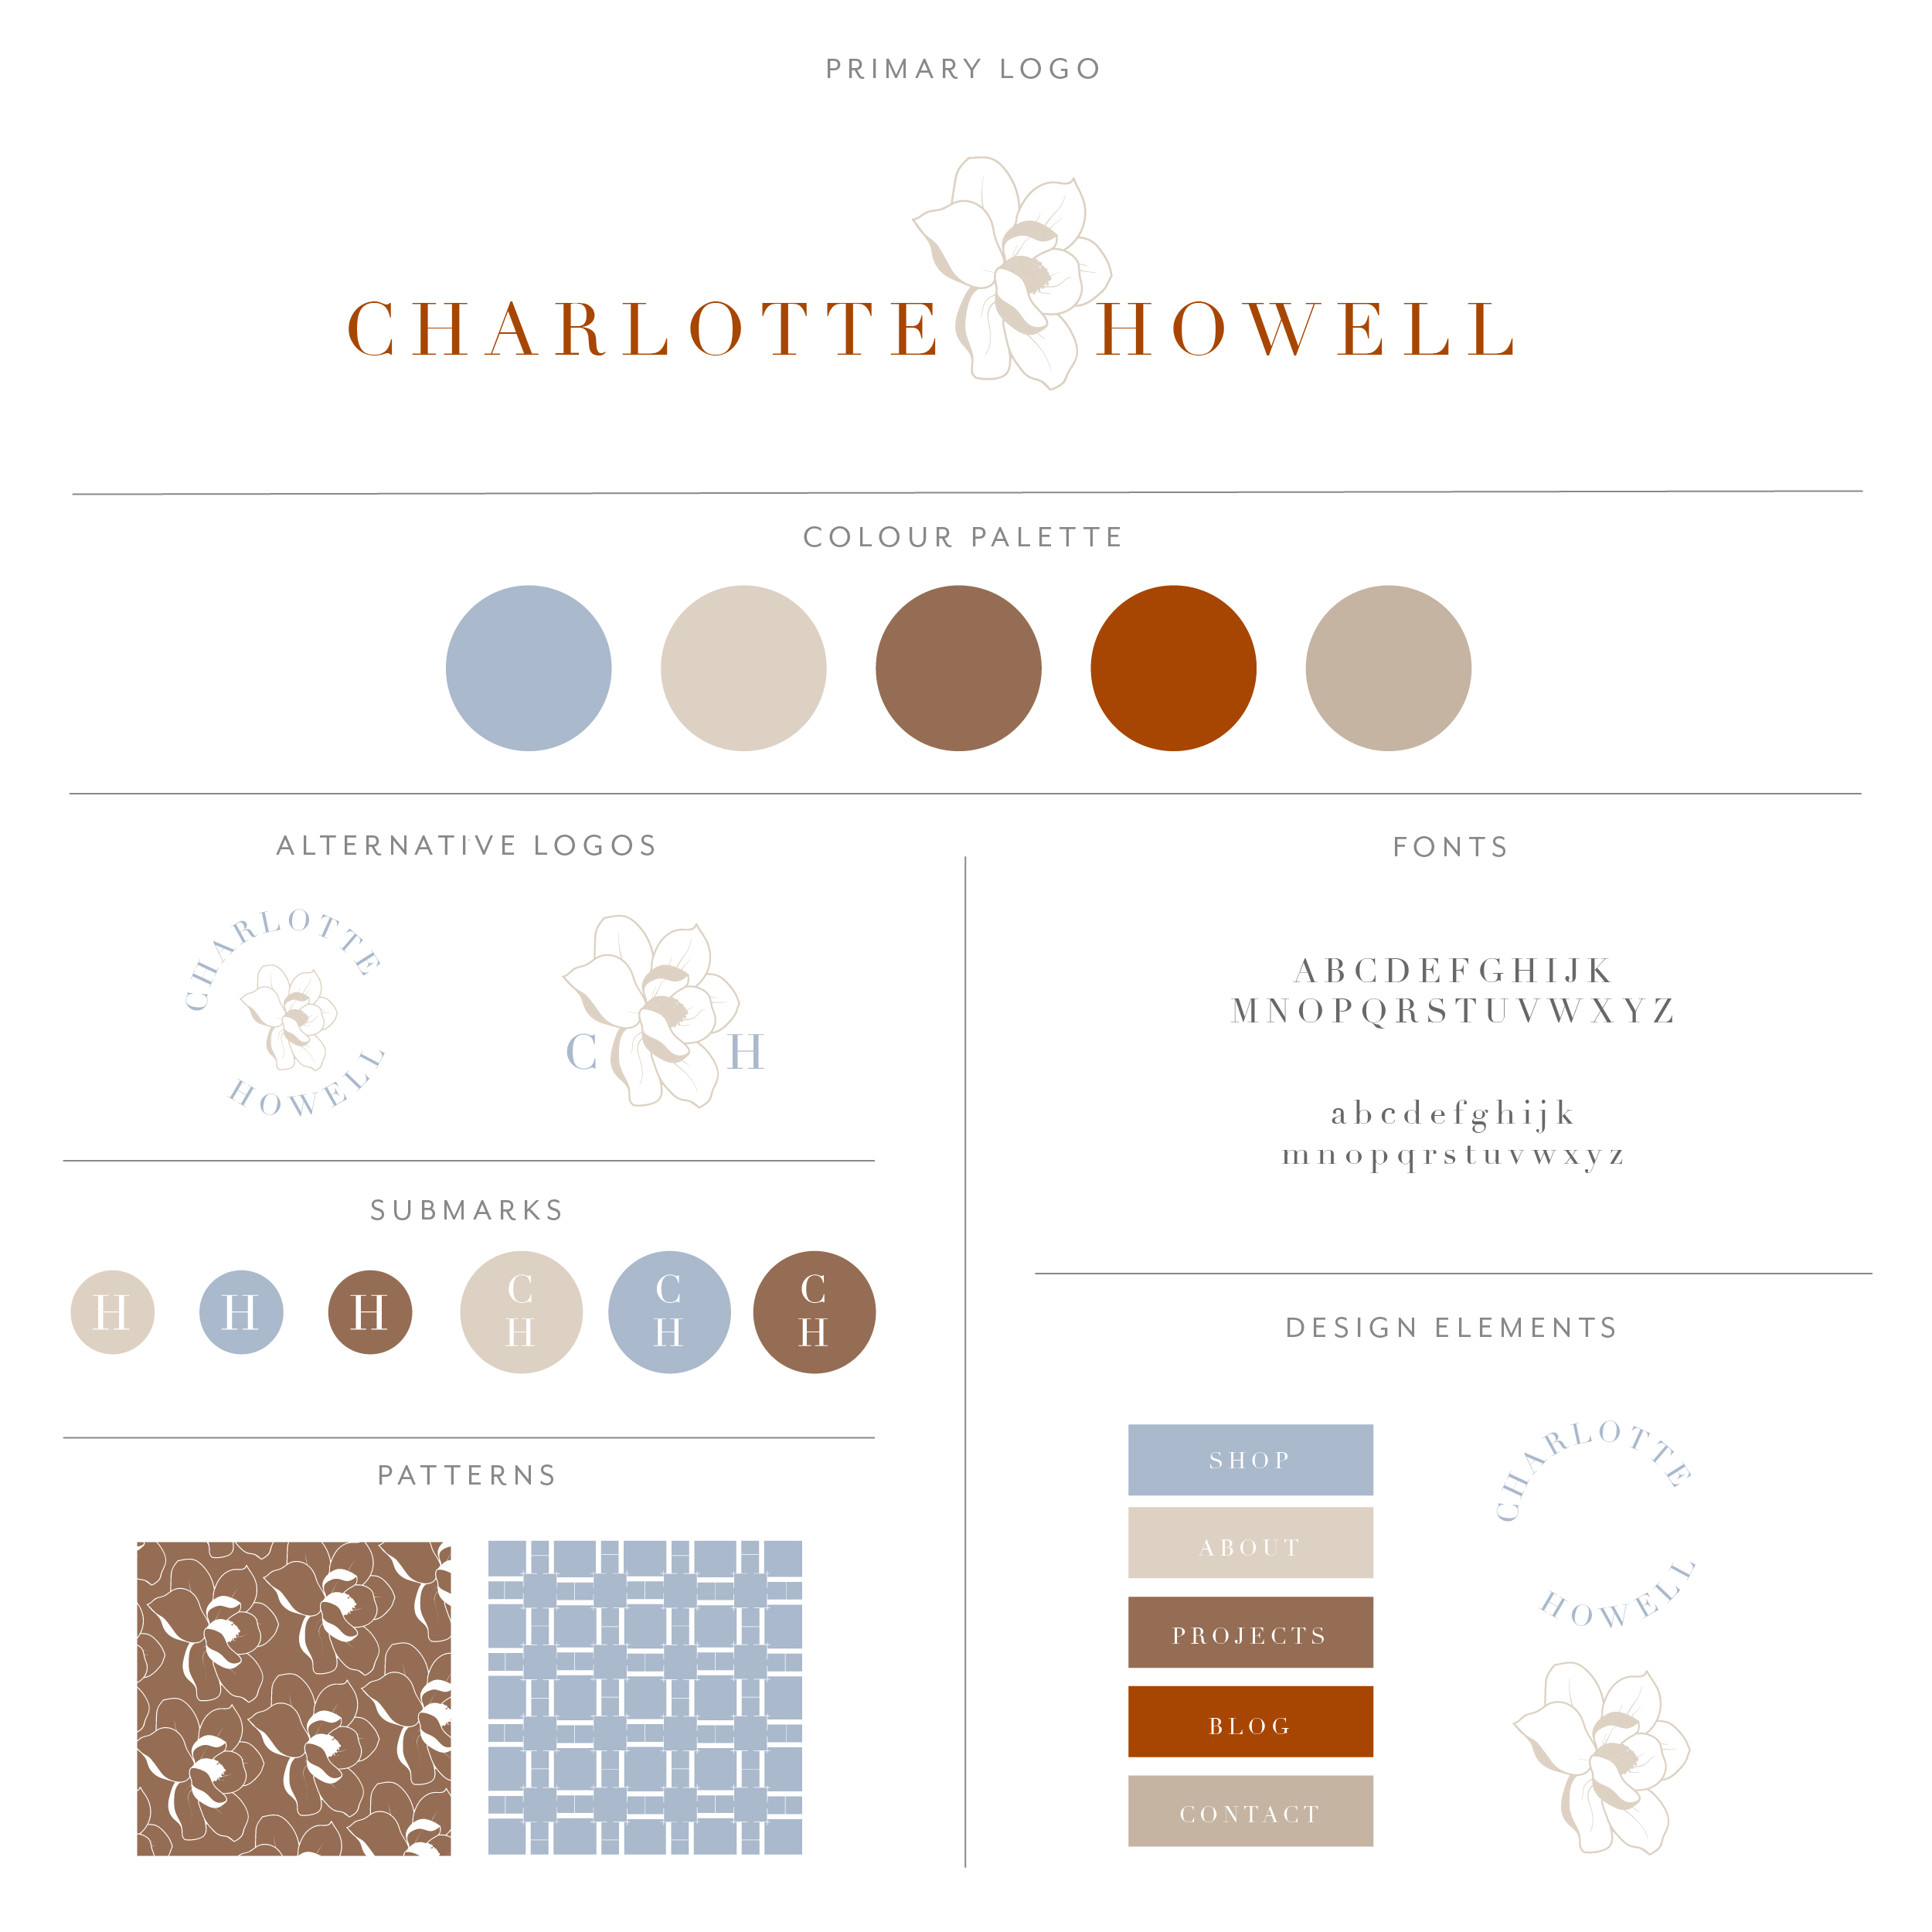 Charlotte Howell branding collection uses serif font with large, opaque flower separating the words. Feminine, yet powerful and sophisticated. Uses deep orange, creams and light shades of blue